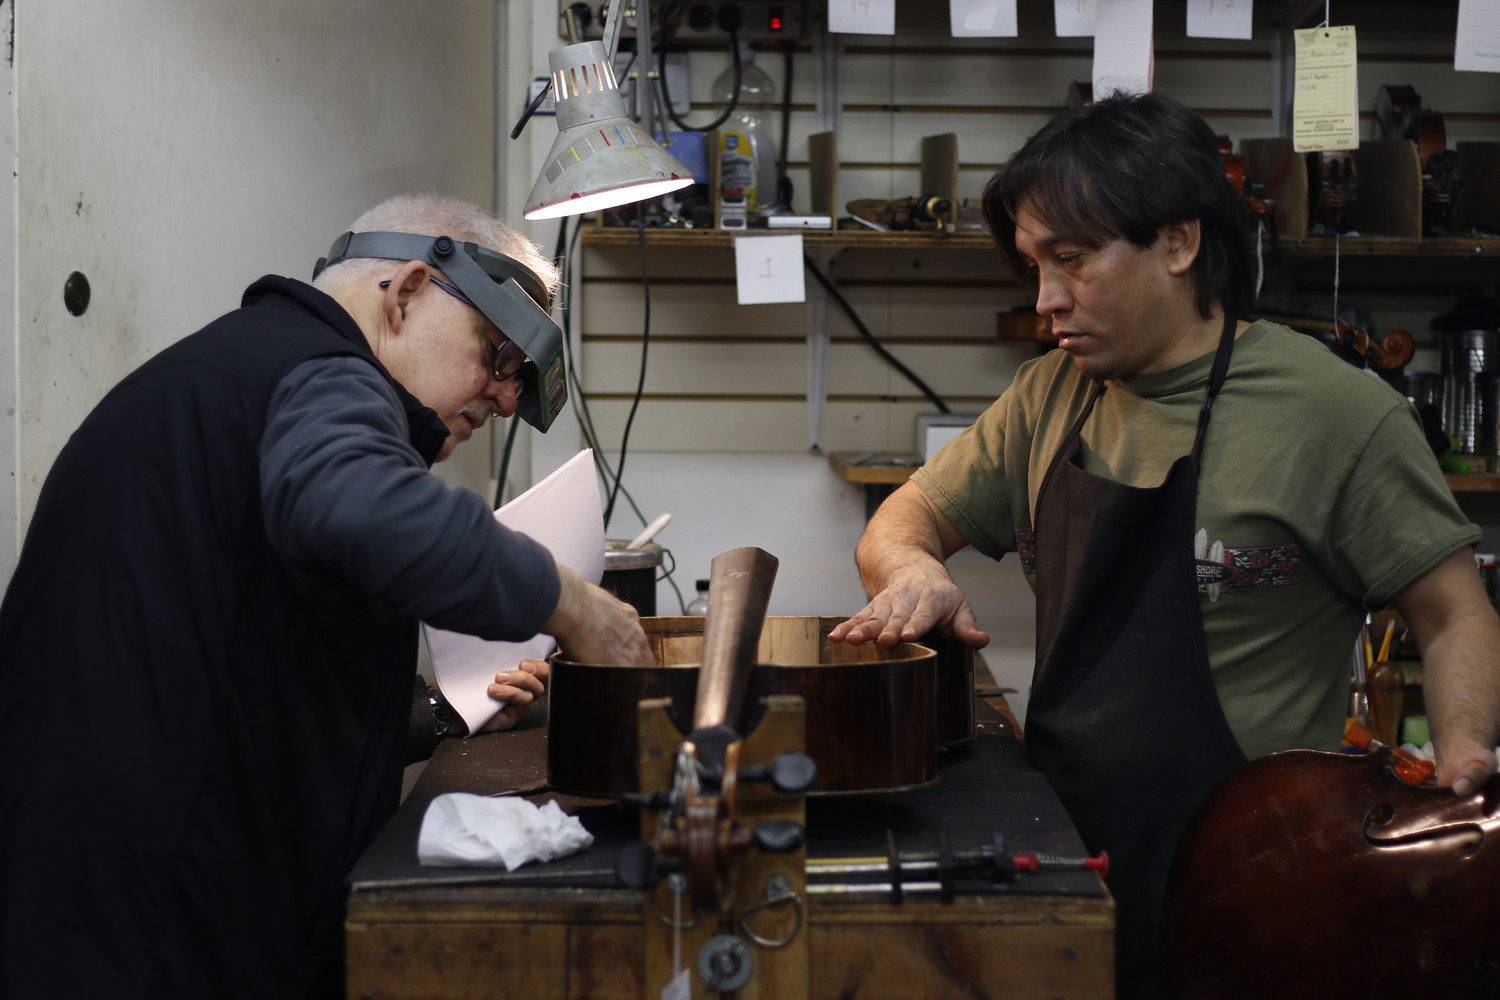 Jake Cradilas and Ricardo Hernandez make a final examination of the repairs before gluing the cello back together.